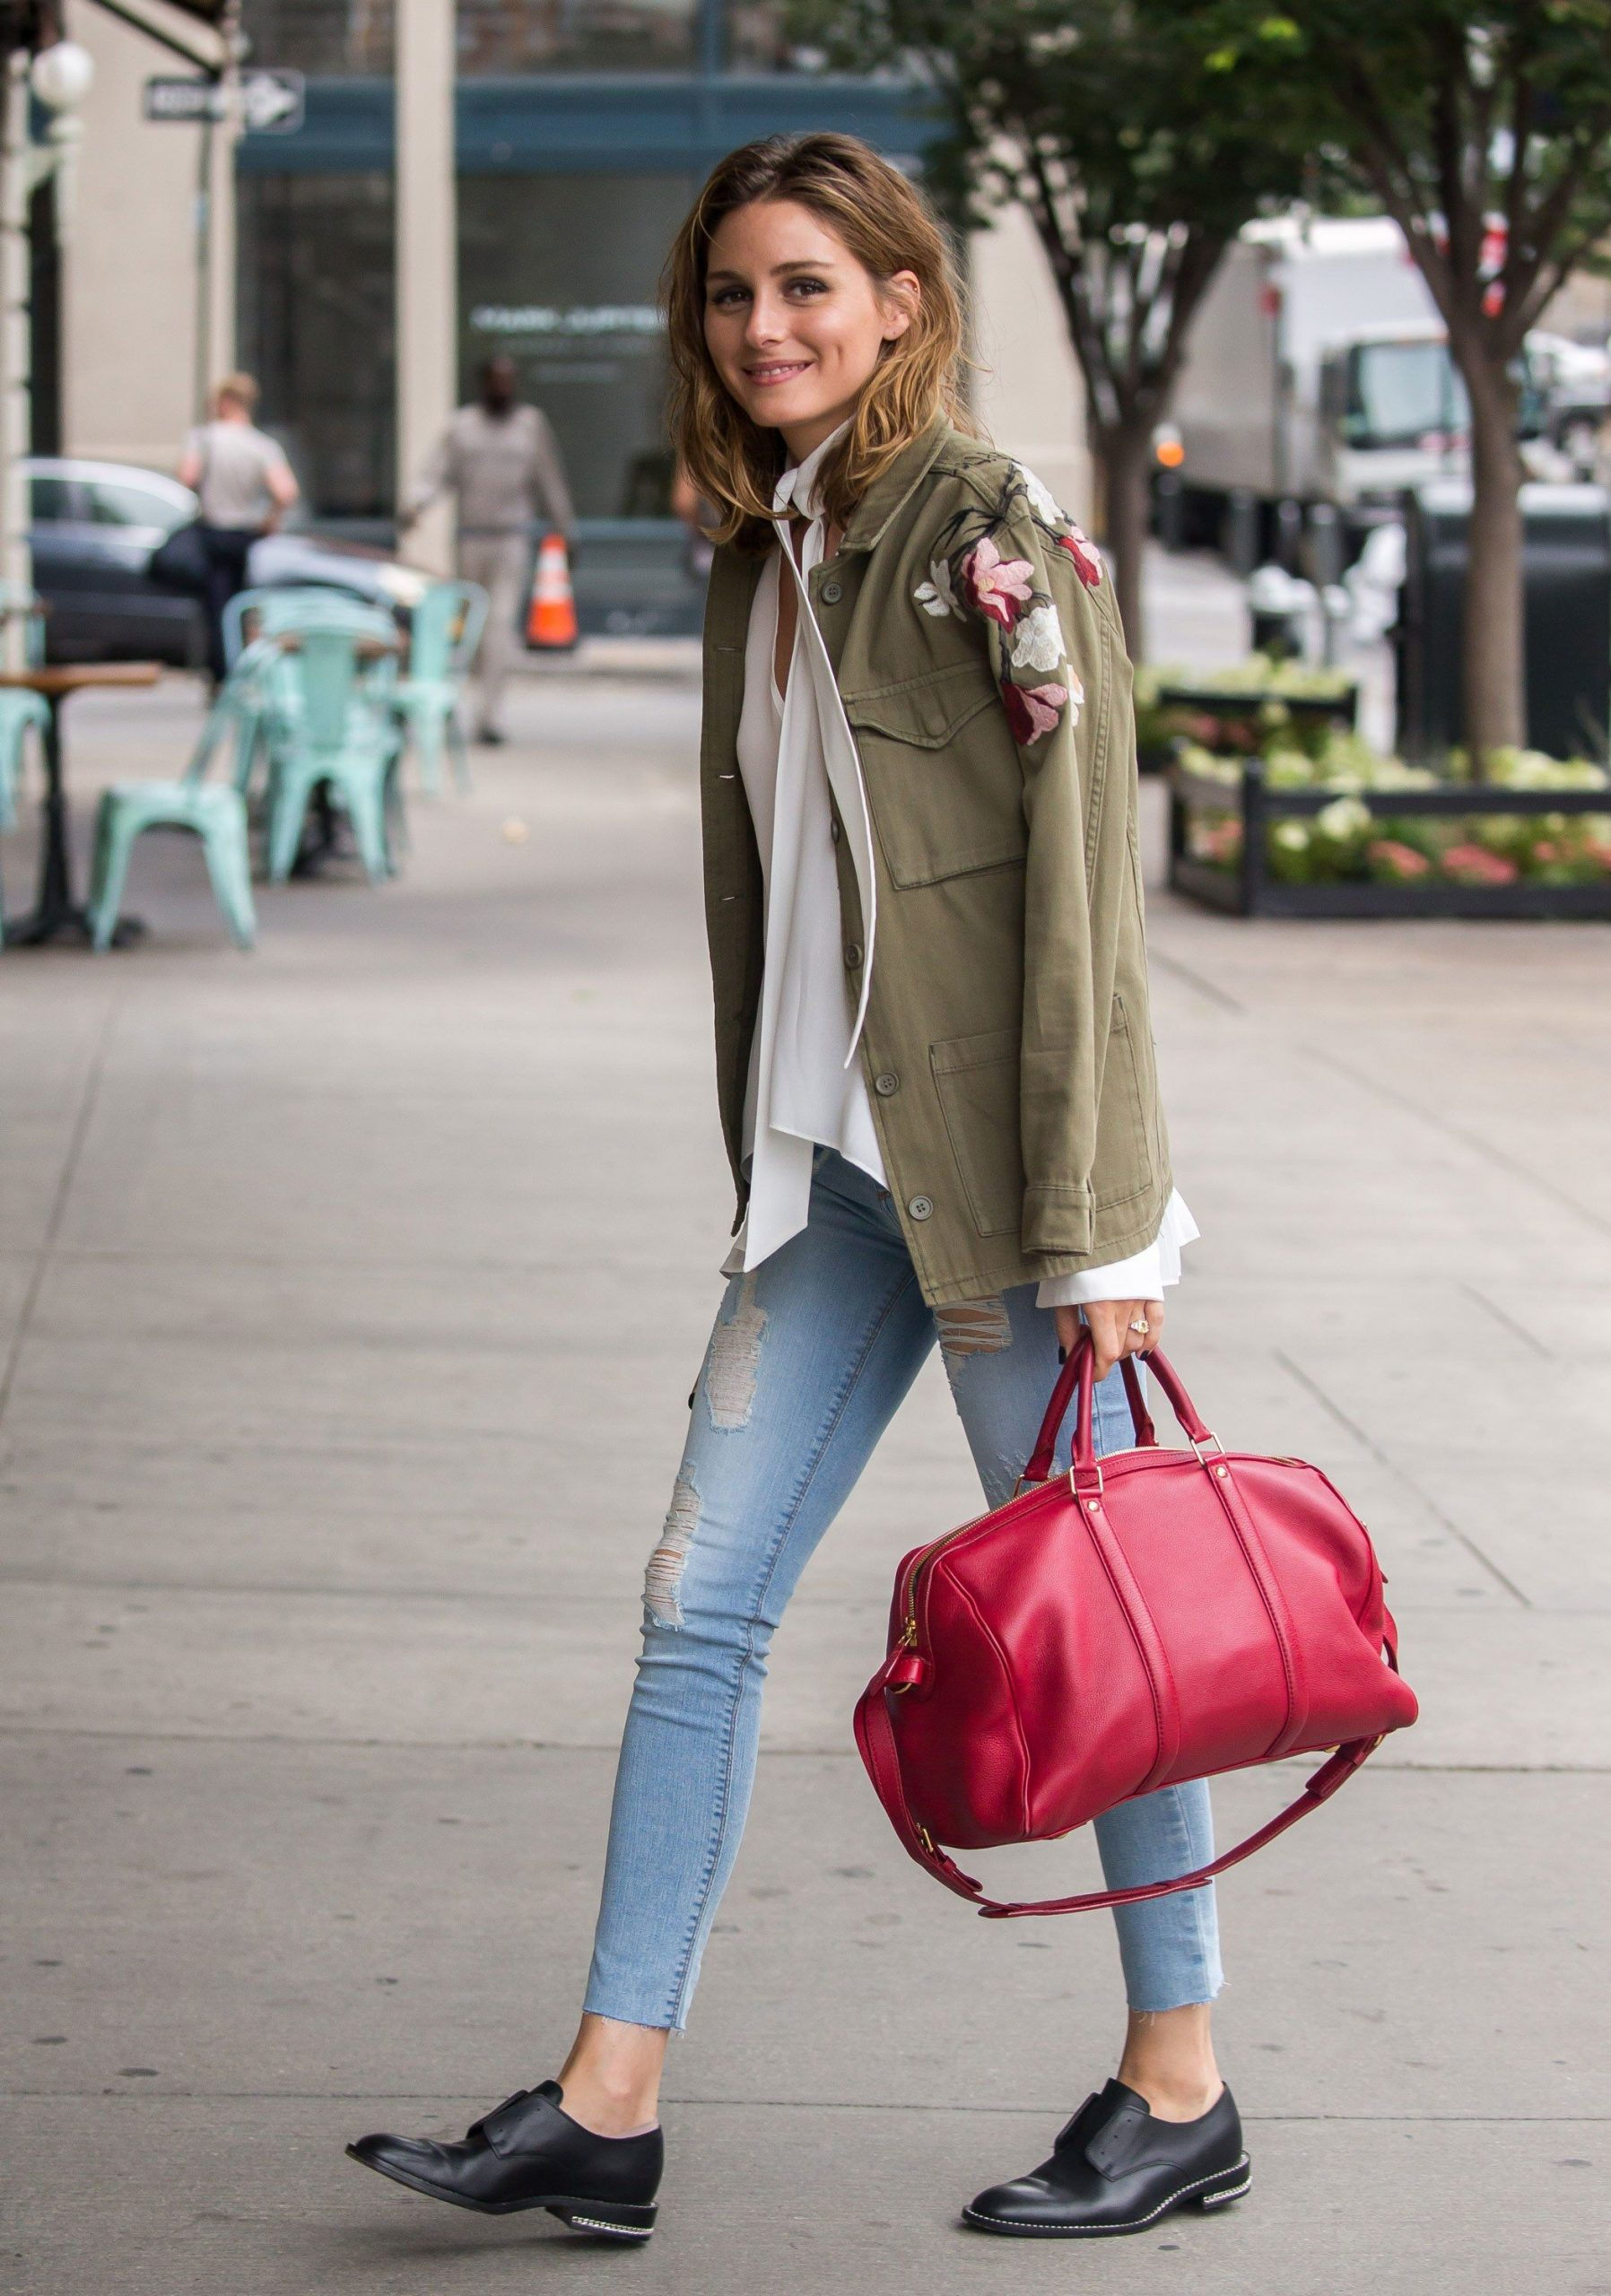 Olivia Palermo in Topshop Misha Nonoo Black Orchid Louis Vuitton and Givenchy in New York City scaled - Back to The Office: Chic & Cool Looks Para Trabalhar Lolla Approved